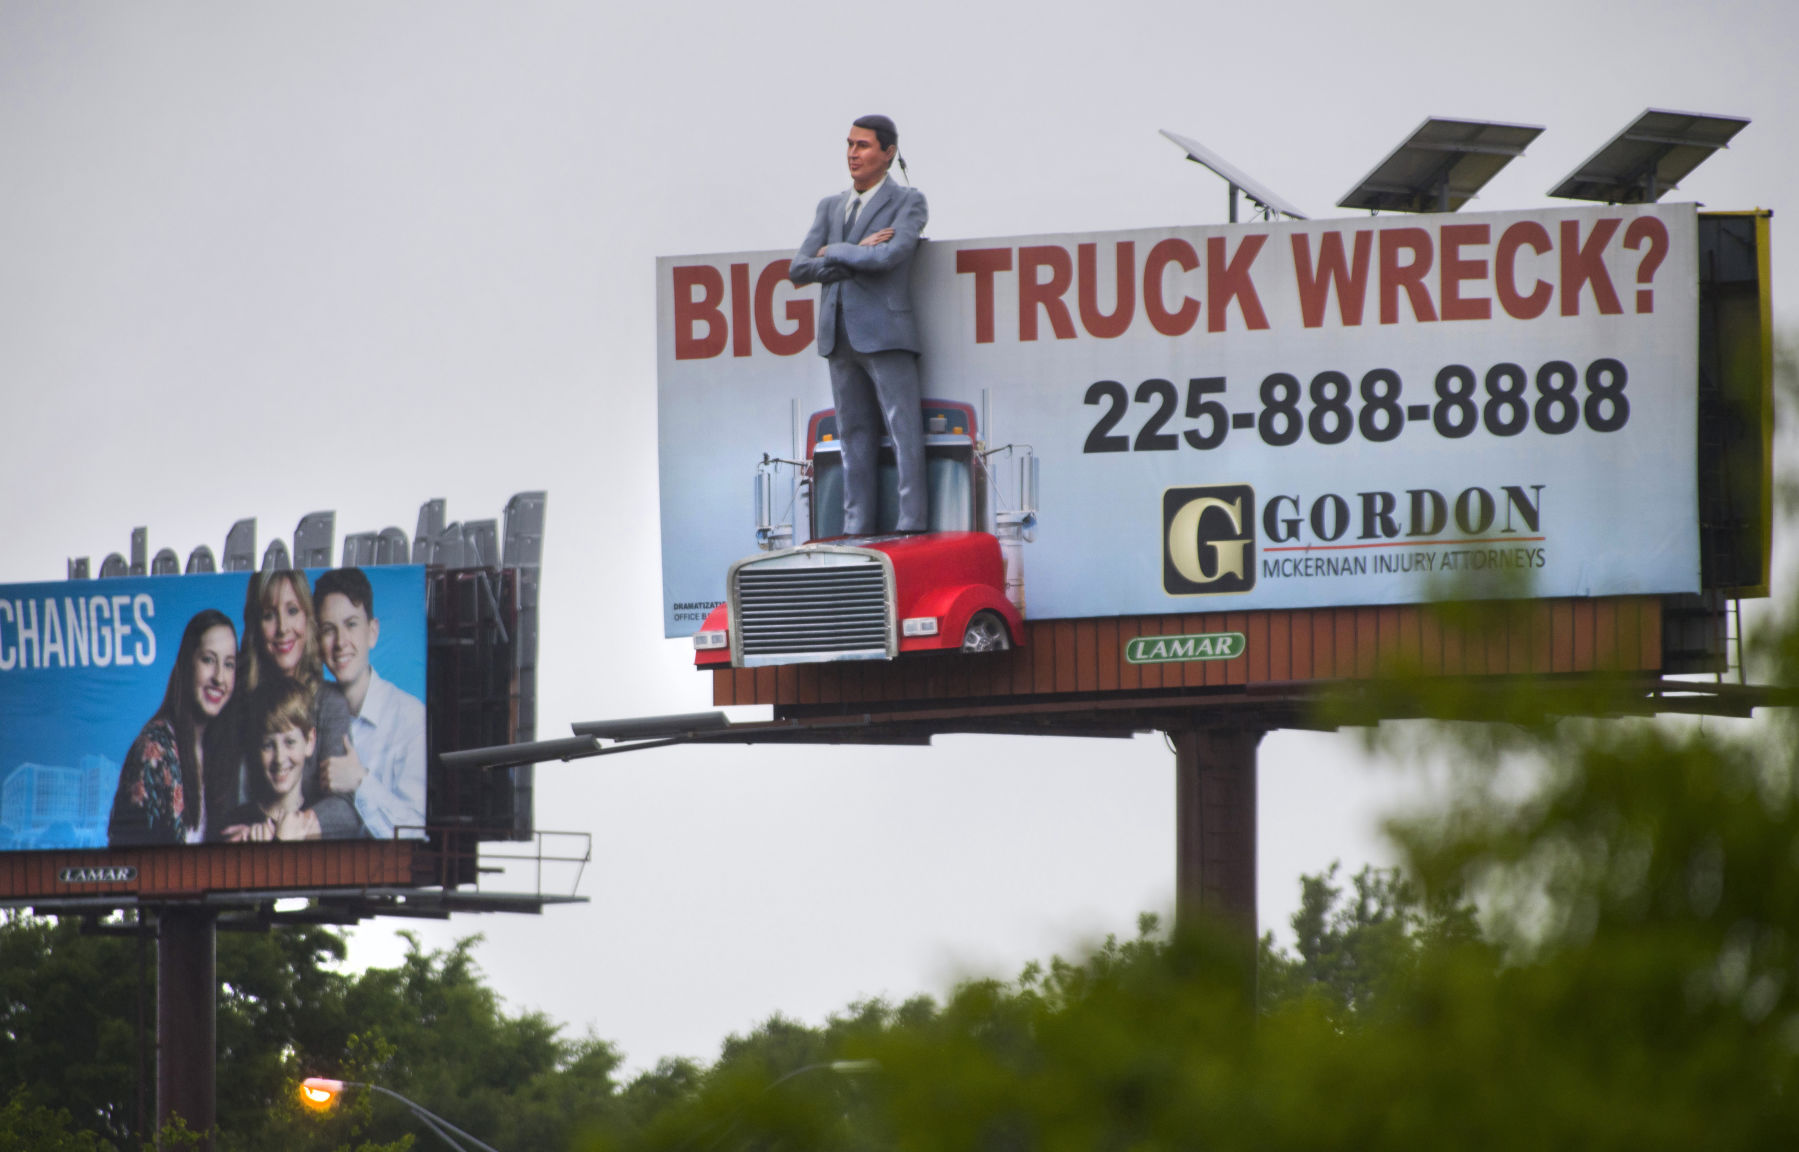 James Gill: For Louisiana, highway billboards are 'litter on a stick.' For Lamar, it's money in the bank